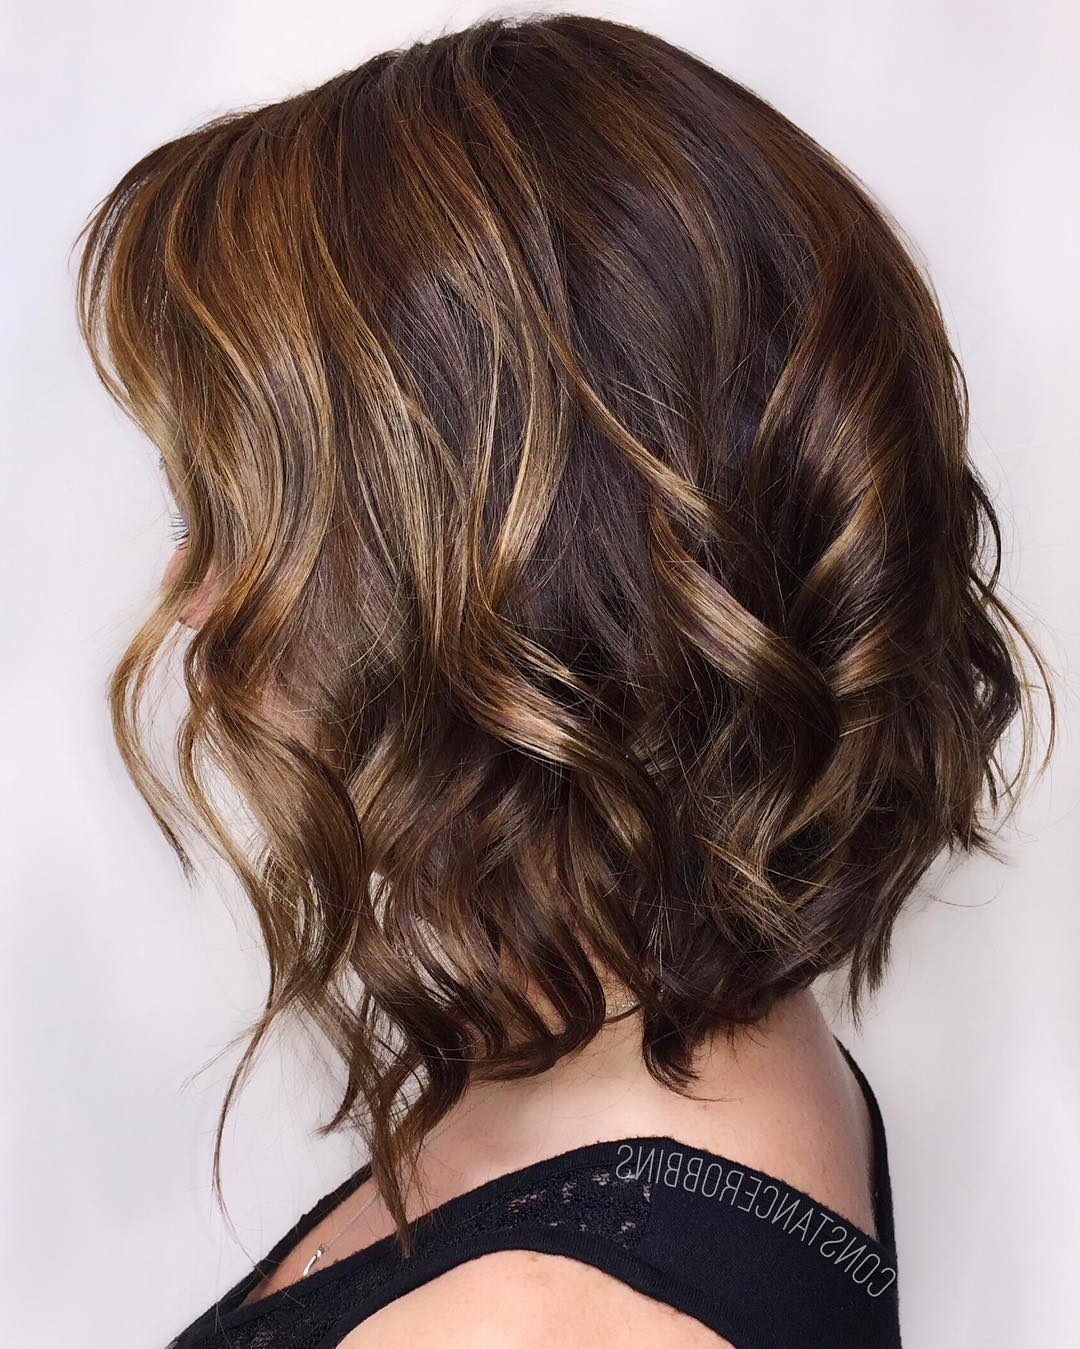 13 Beautiful Brown Hair With Blonde Highlights And Lowlights Pertaining To Short Brown Hairstyles With Subtle Highlights (View 7 of 20)